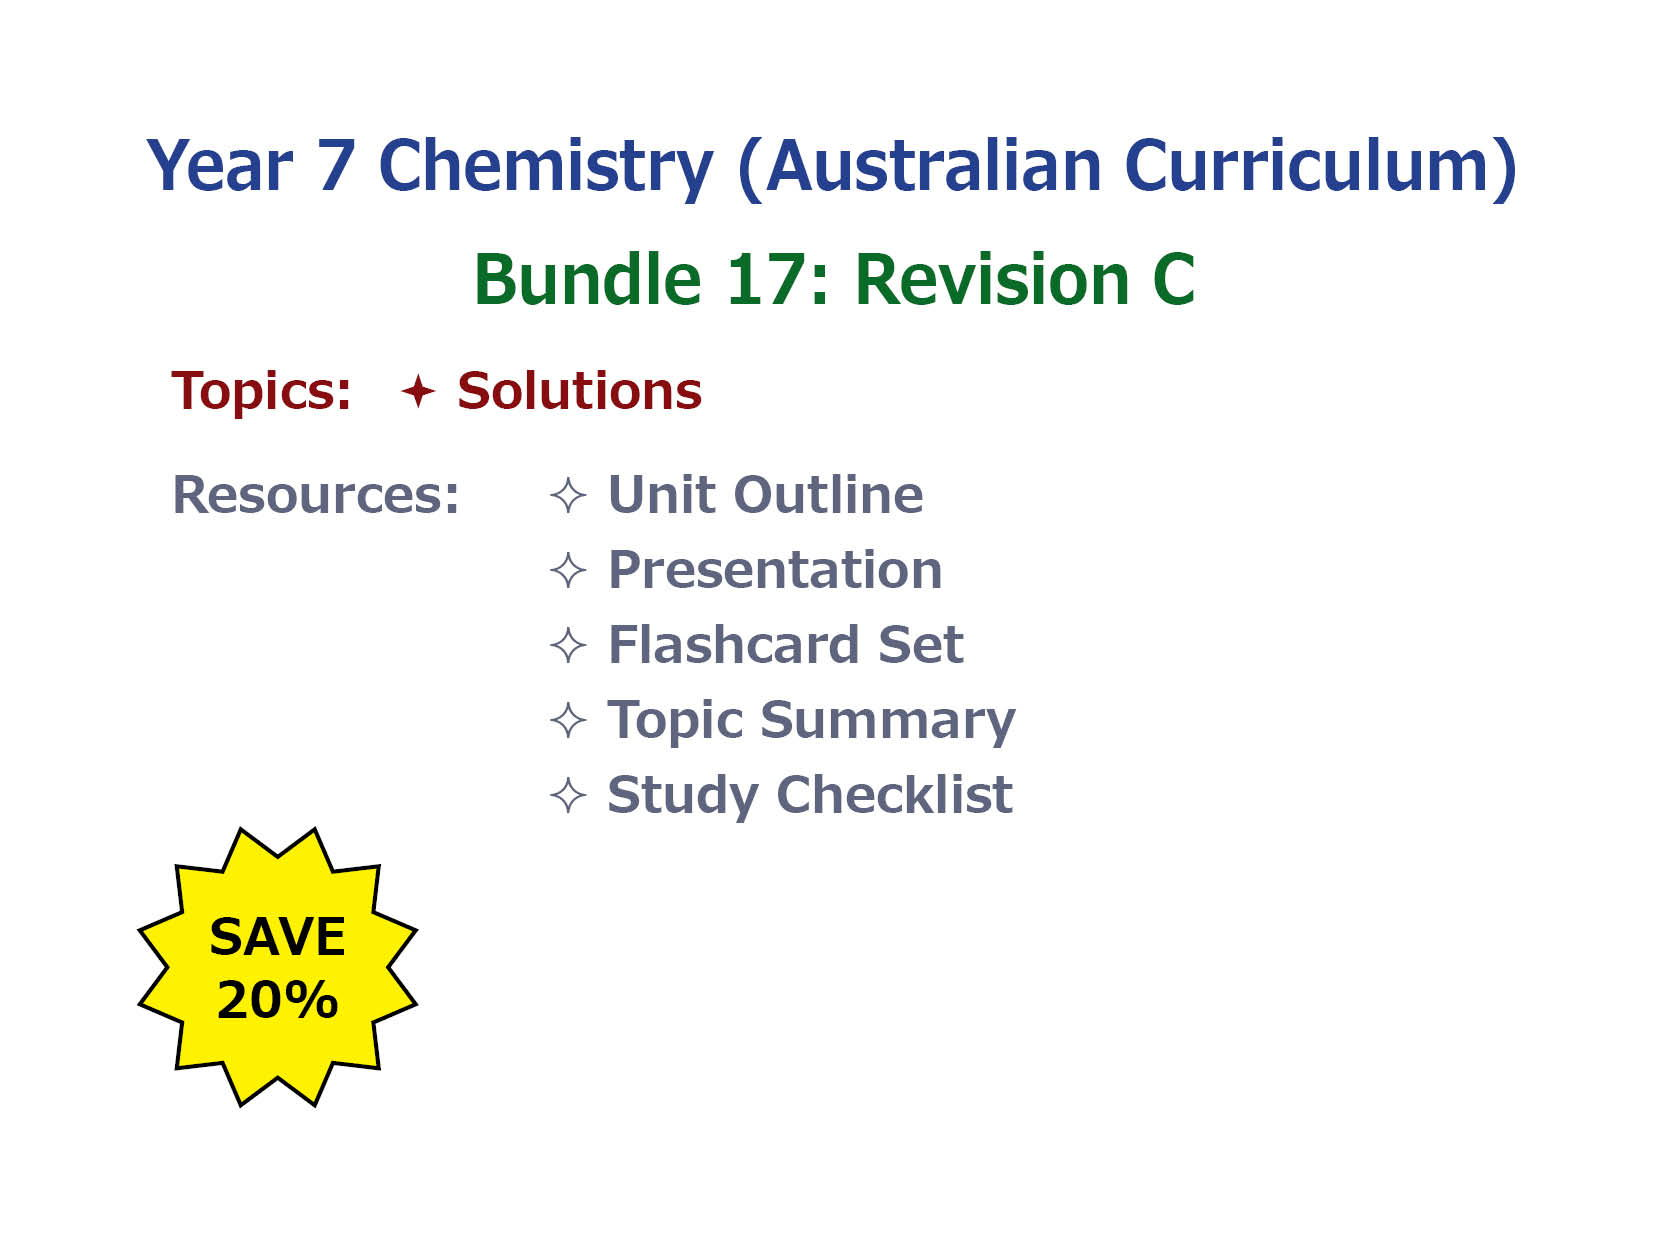 7AU Chemistry: Revision Bundle C